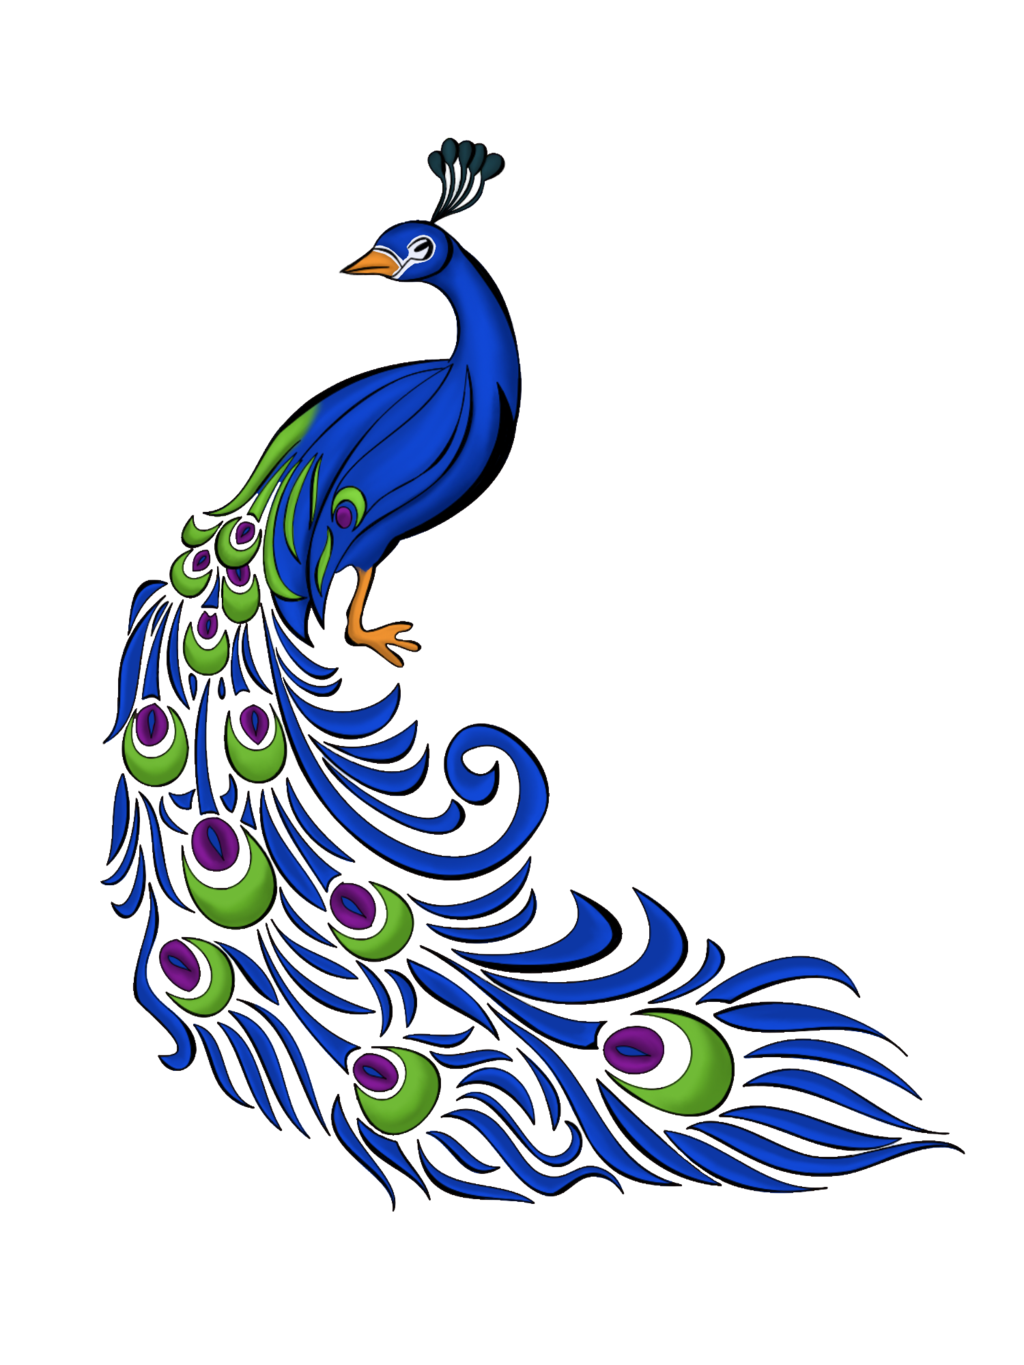 Drawn peacock colour full Panda Clipart Images Clipart Free